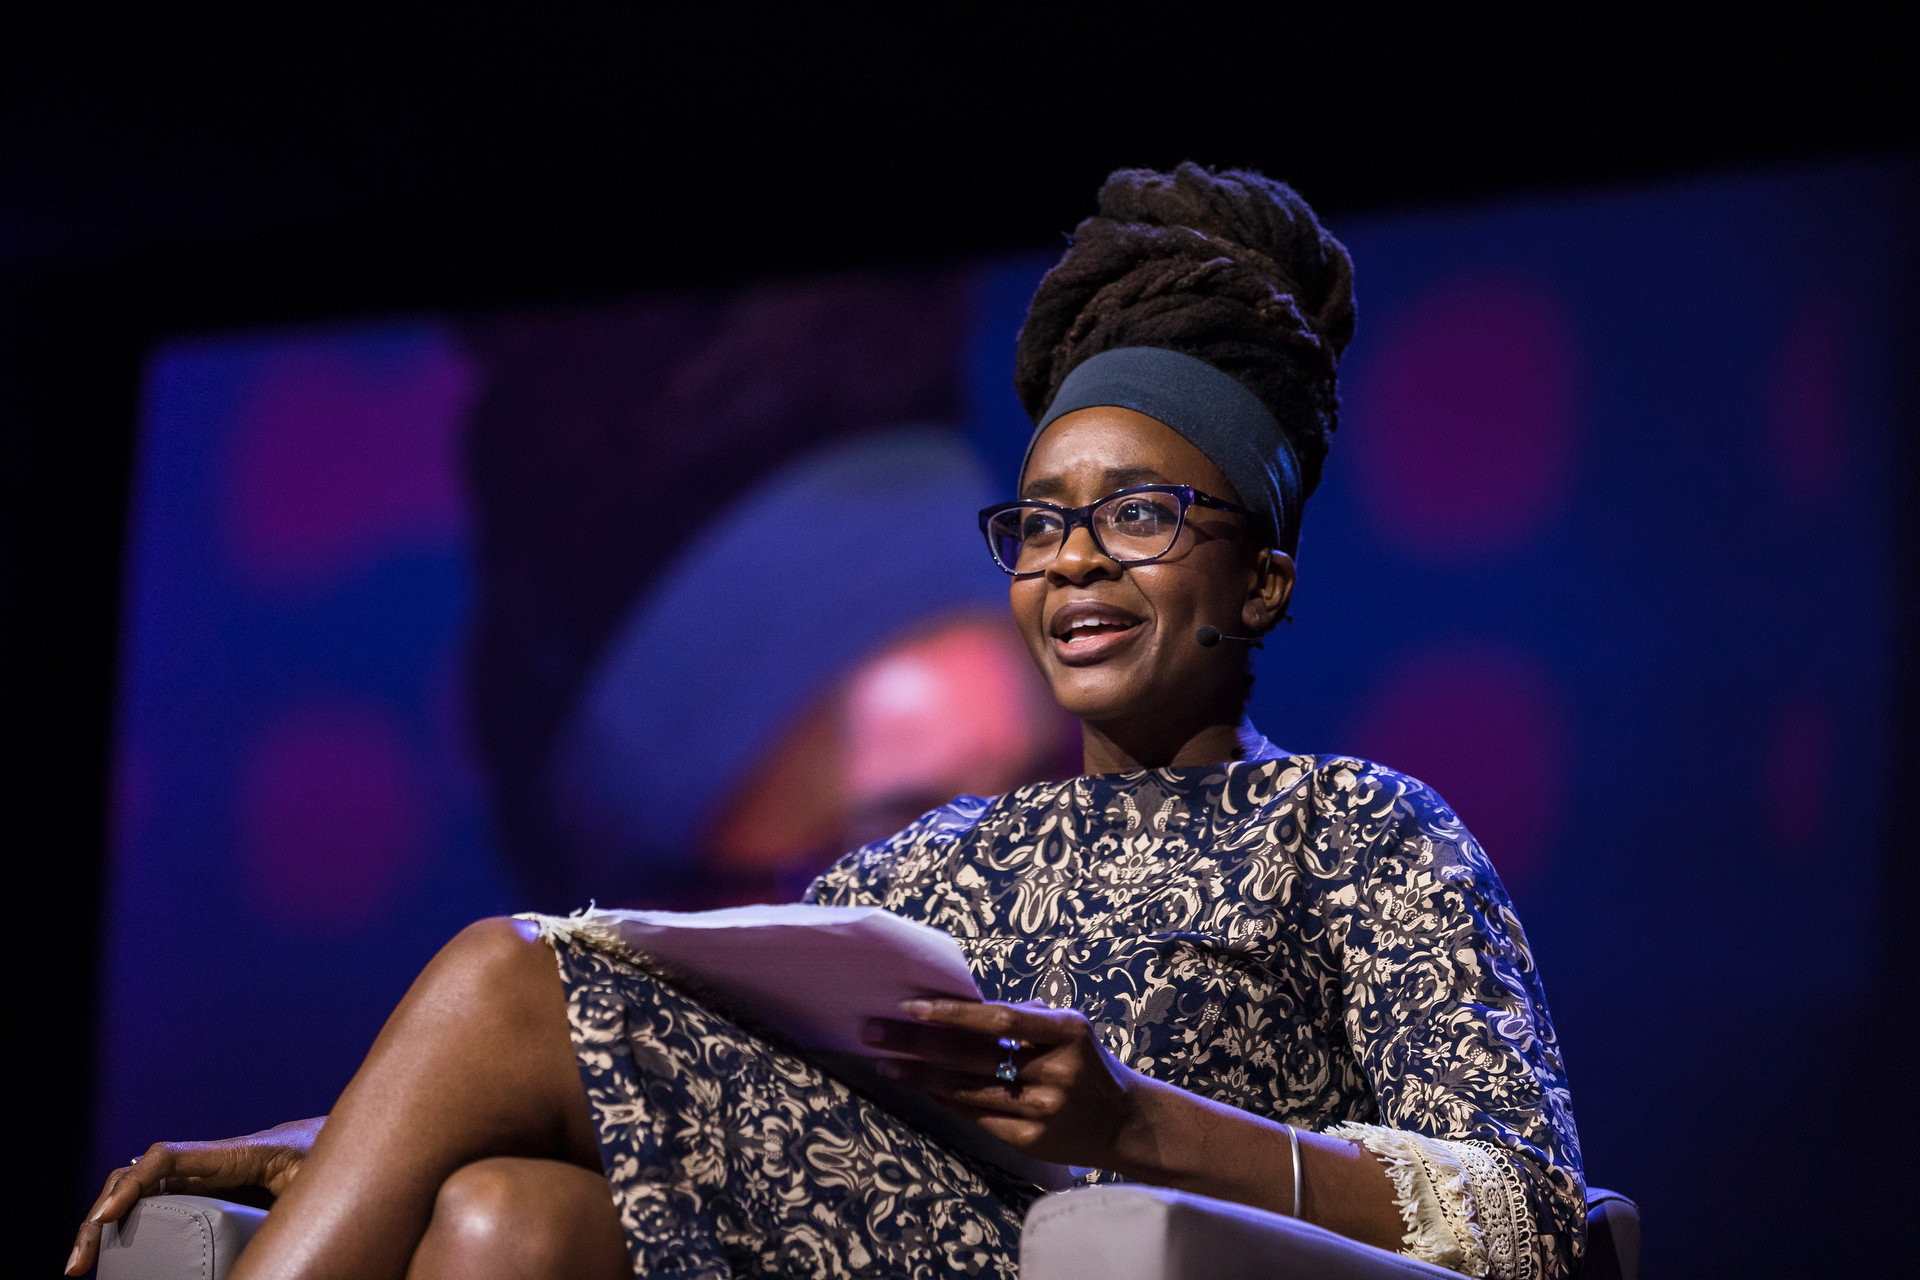 Nnedi Okorafor speaking at TEDGlobal 2017